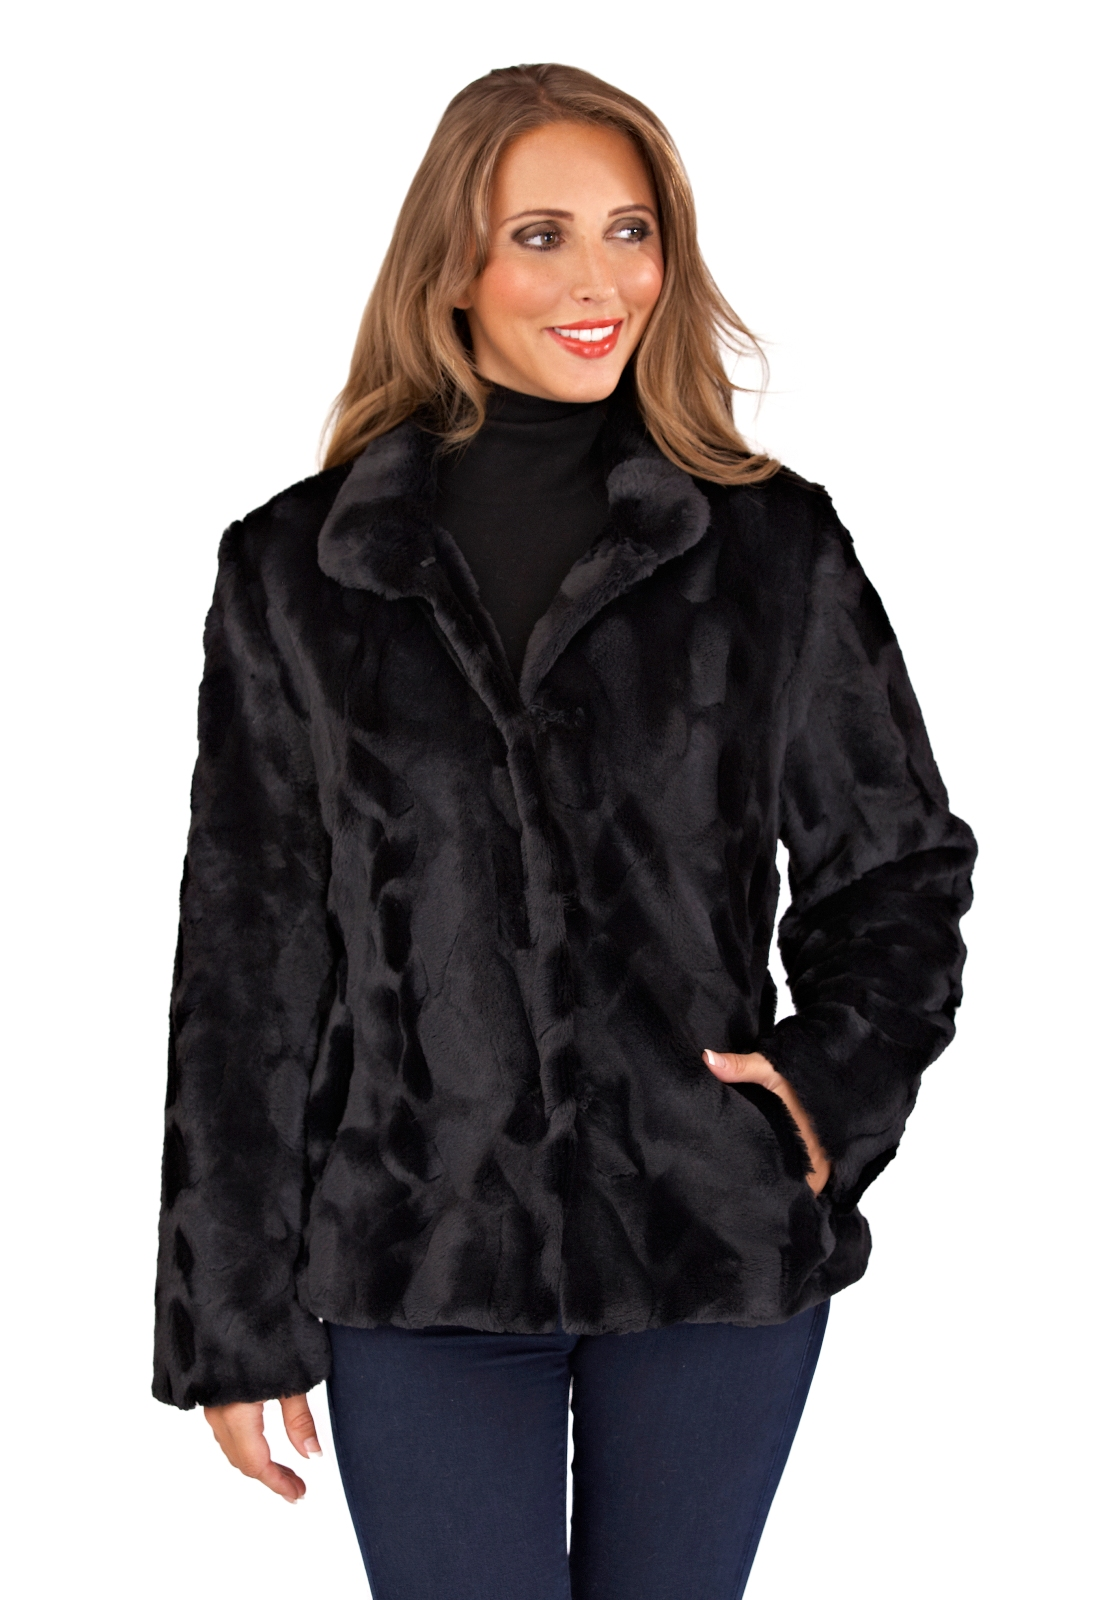 Find a great selection of women's fur coats & faux fur at palmmetrf1.ga Shop top brands like Trina Turk, Moose Knuckles & more. Free shipping & returns.